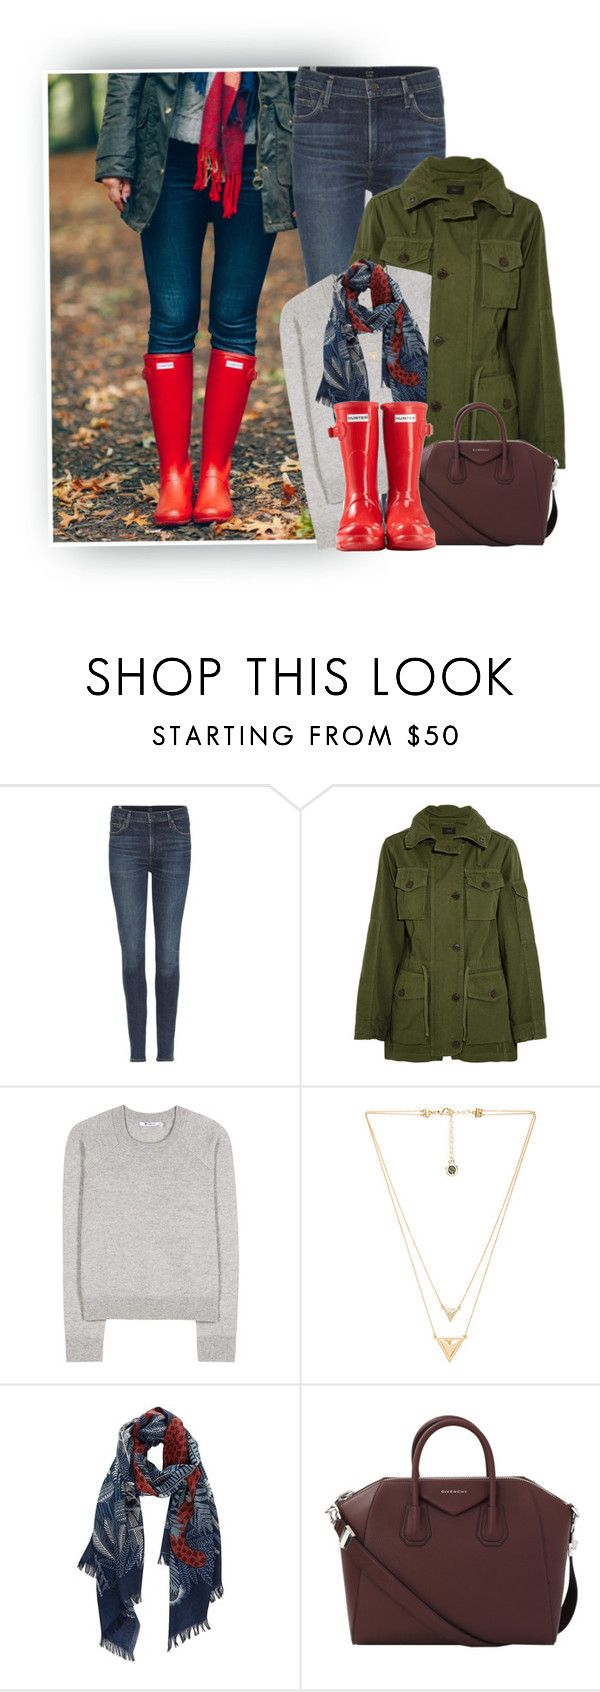 """""""Fun Fall Fridays! Read Description..."""" by hollowpoint-smile ❤ liked on Polyvore featuring Citizens of Humanity, J.Crew, T By Alexander Wang, House of Harlow 1960, Inouitoosh, Givenchy and Hunter"""